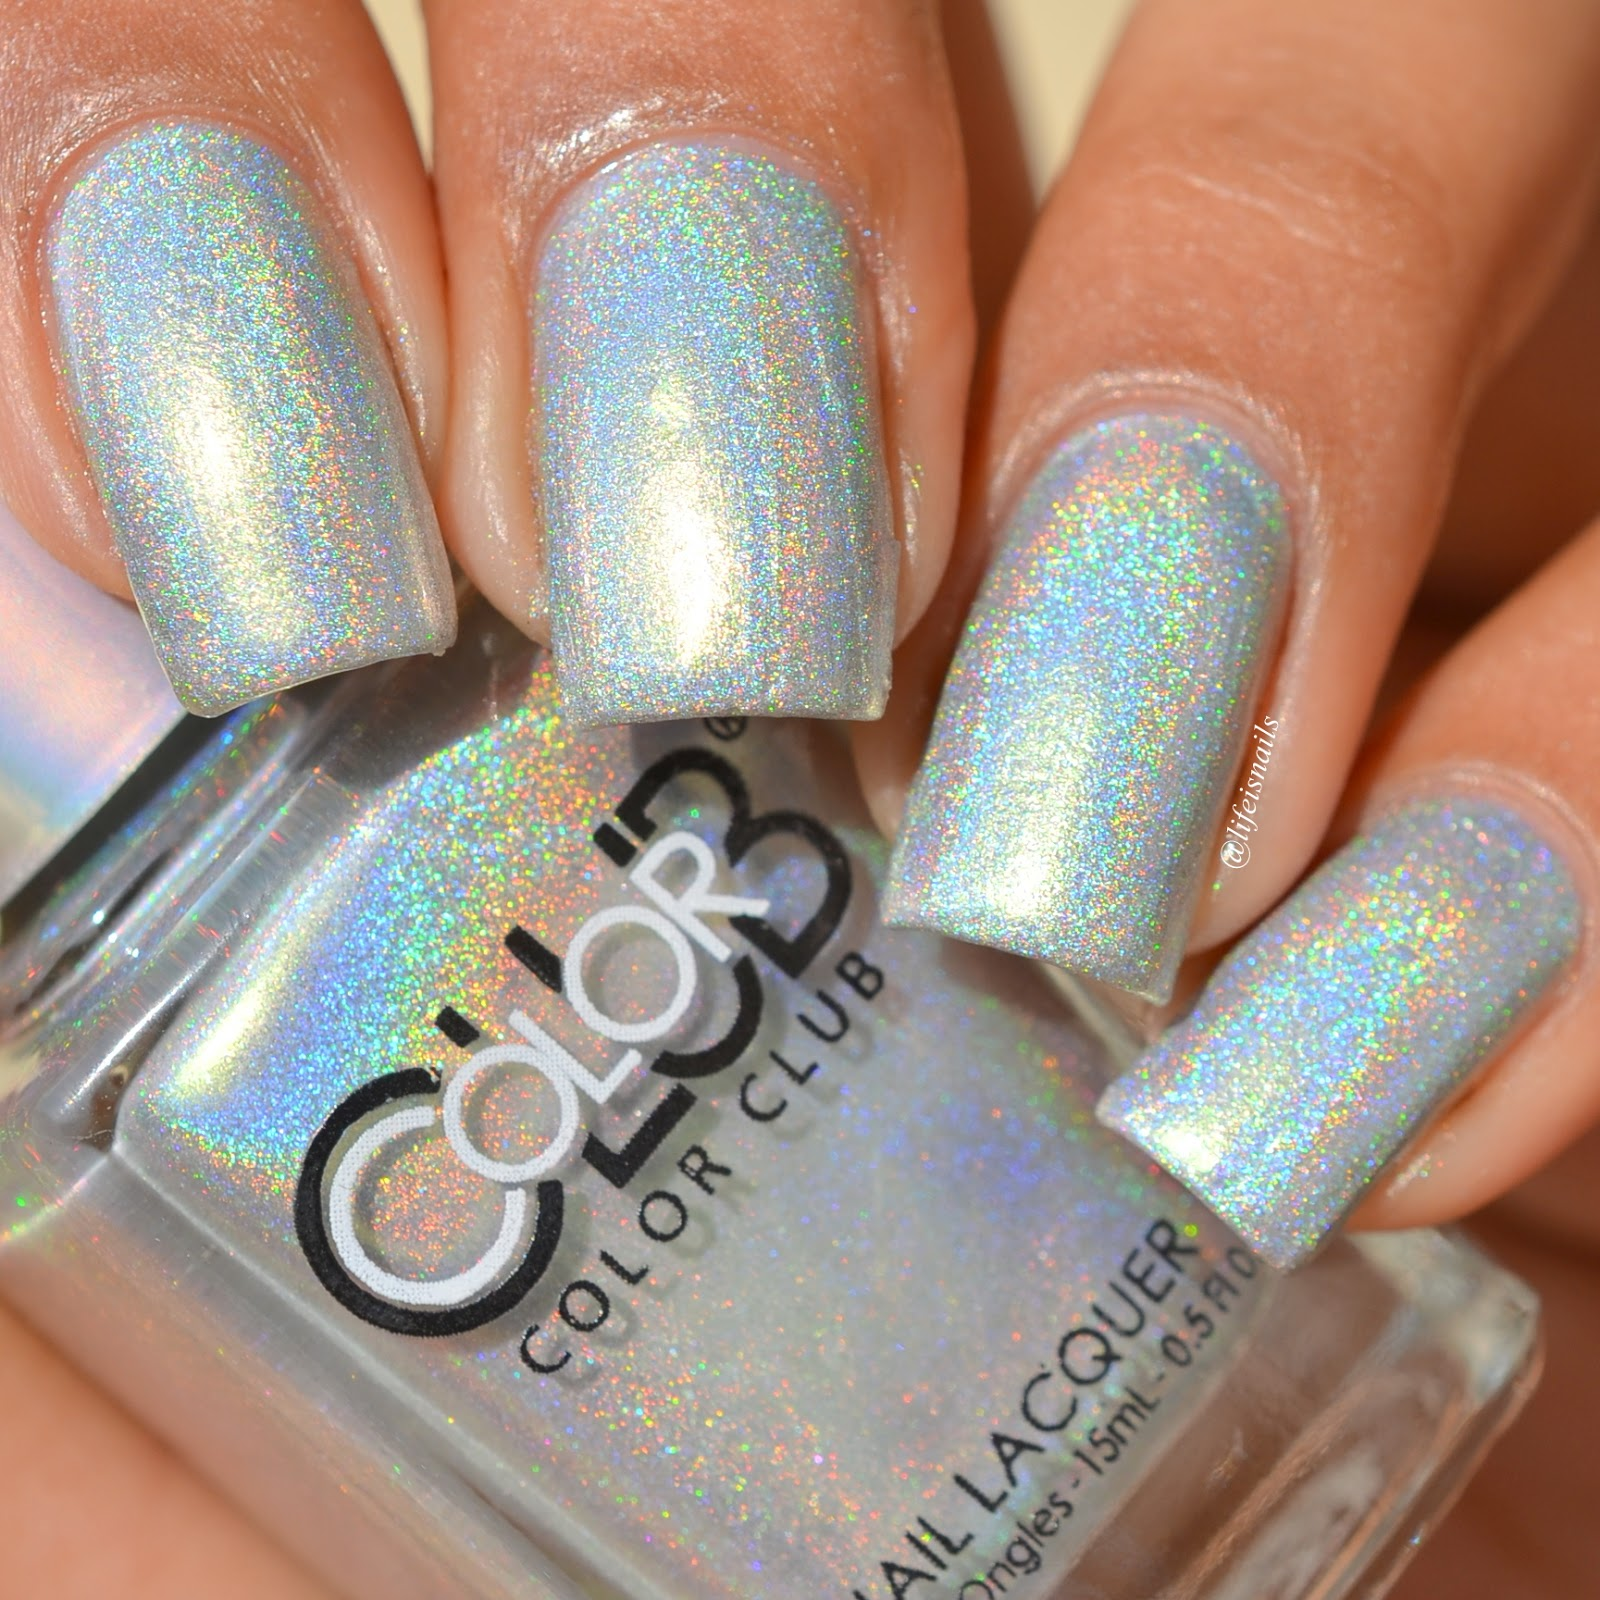 Color Club Holographic Nail Polish Swatches: Color Club Halo Hues 2015 Swatches And Review